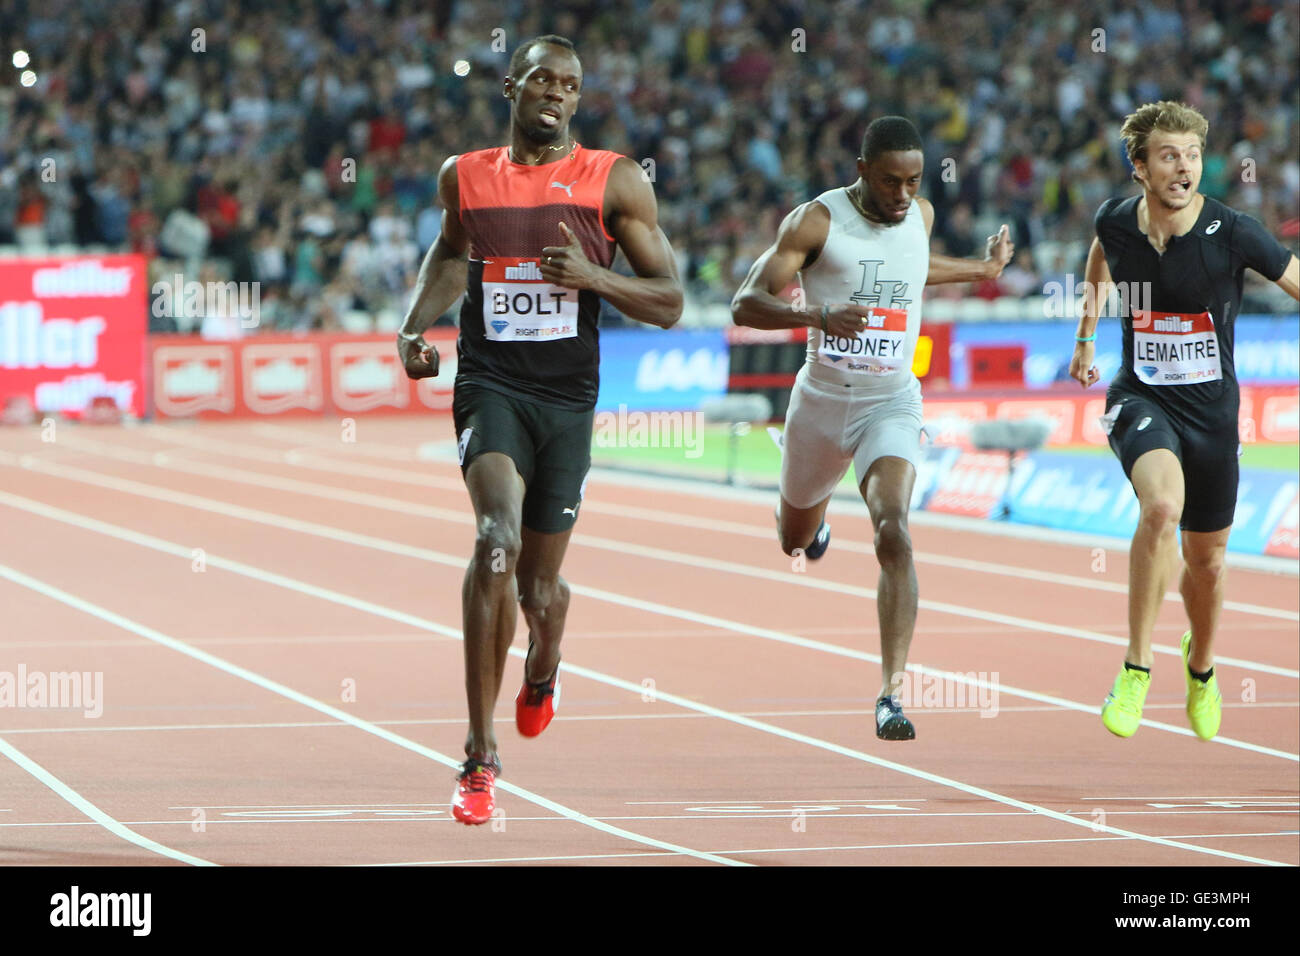 London, UK. 22nd July, 2016. IAAF Diamond League Anniversary Games.Usain Bolt takes first place in the mens 100m. - Stock Image